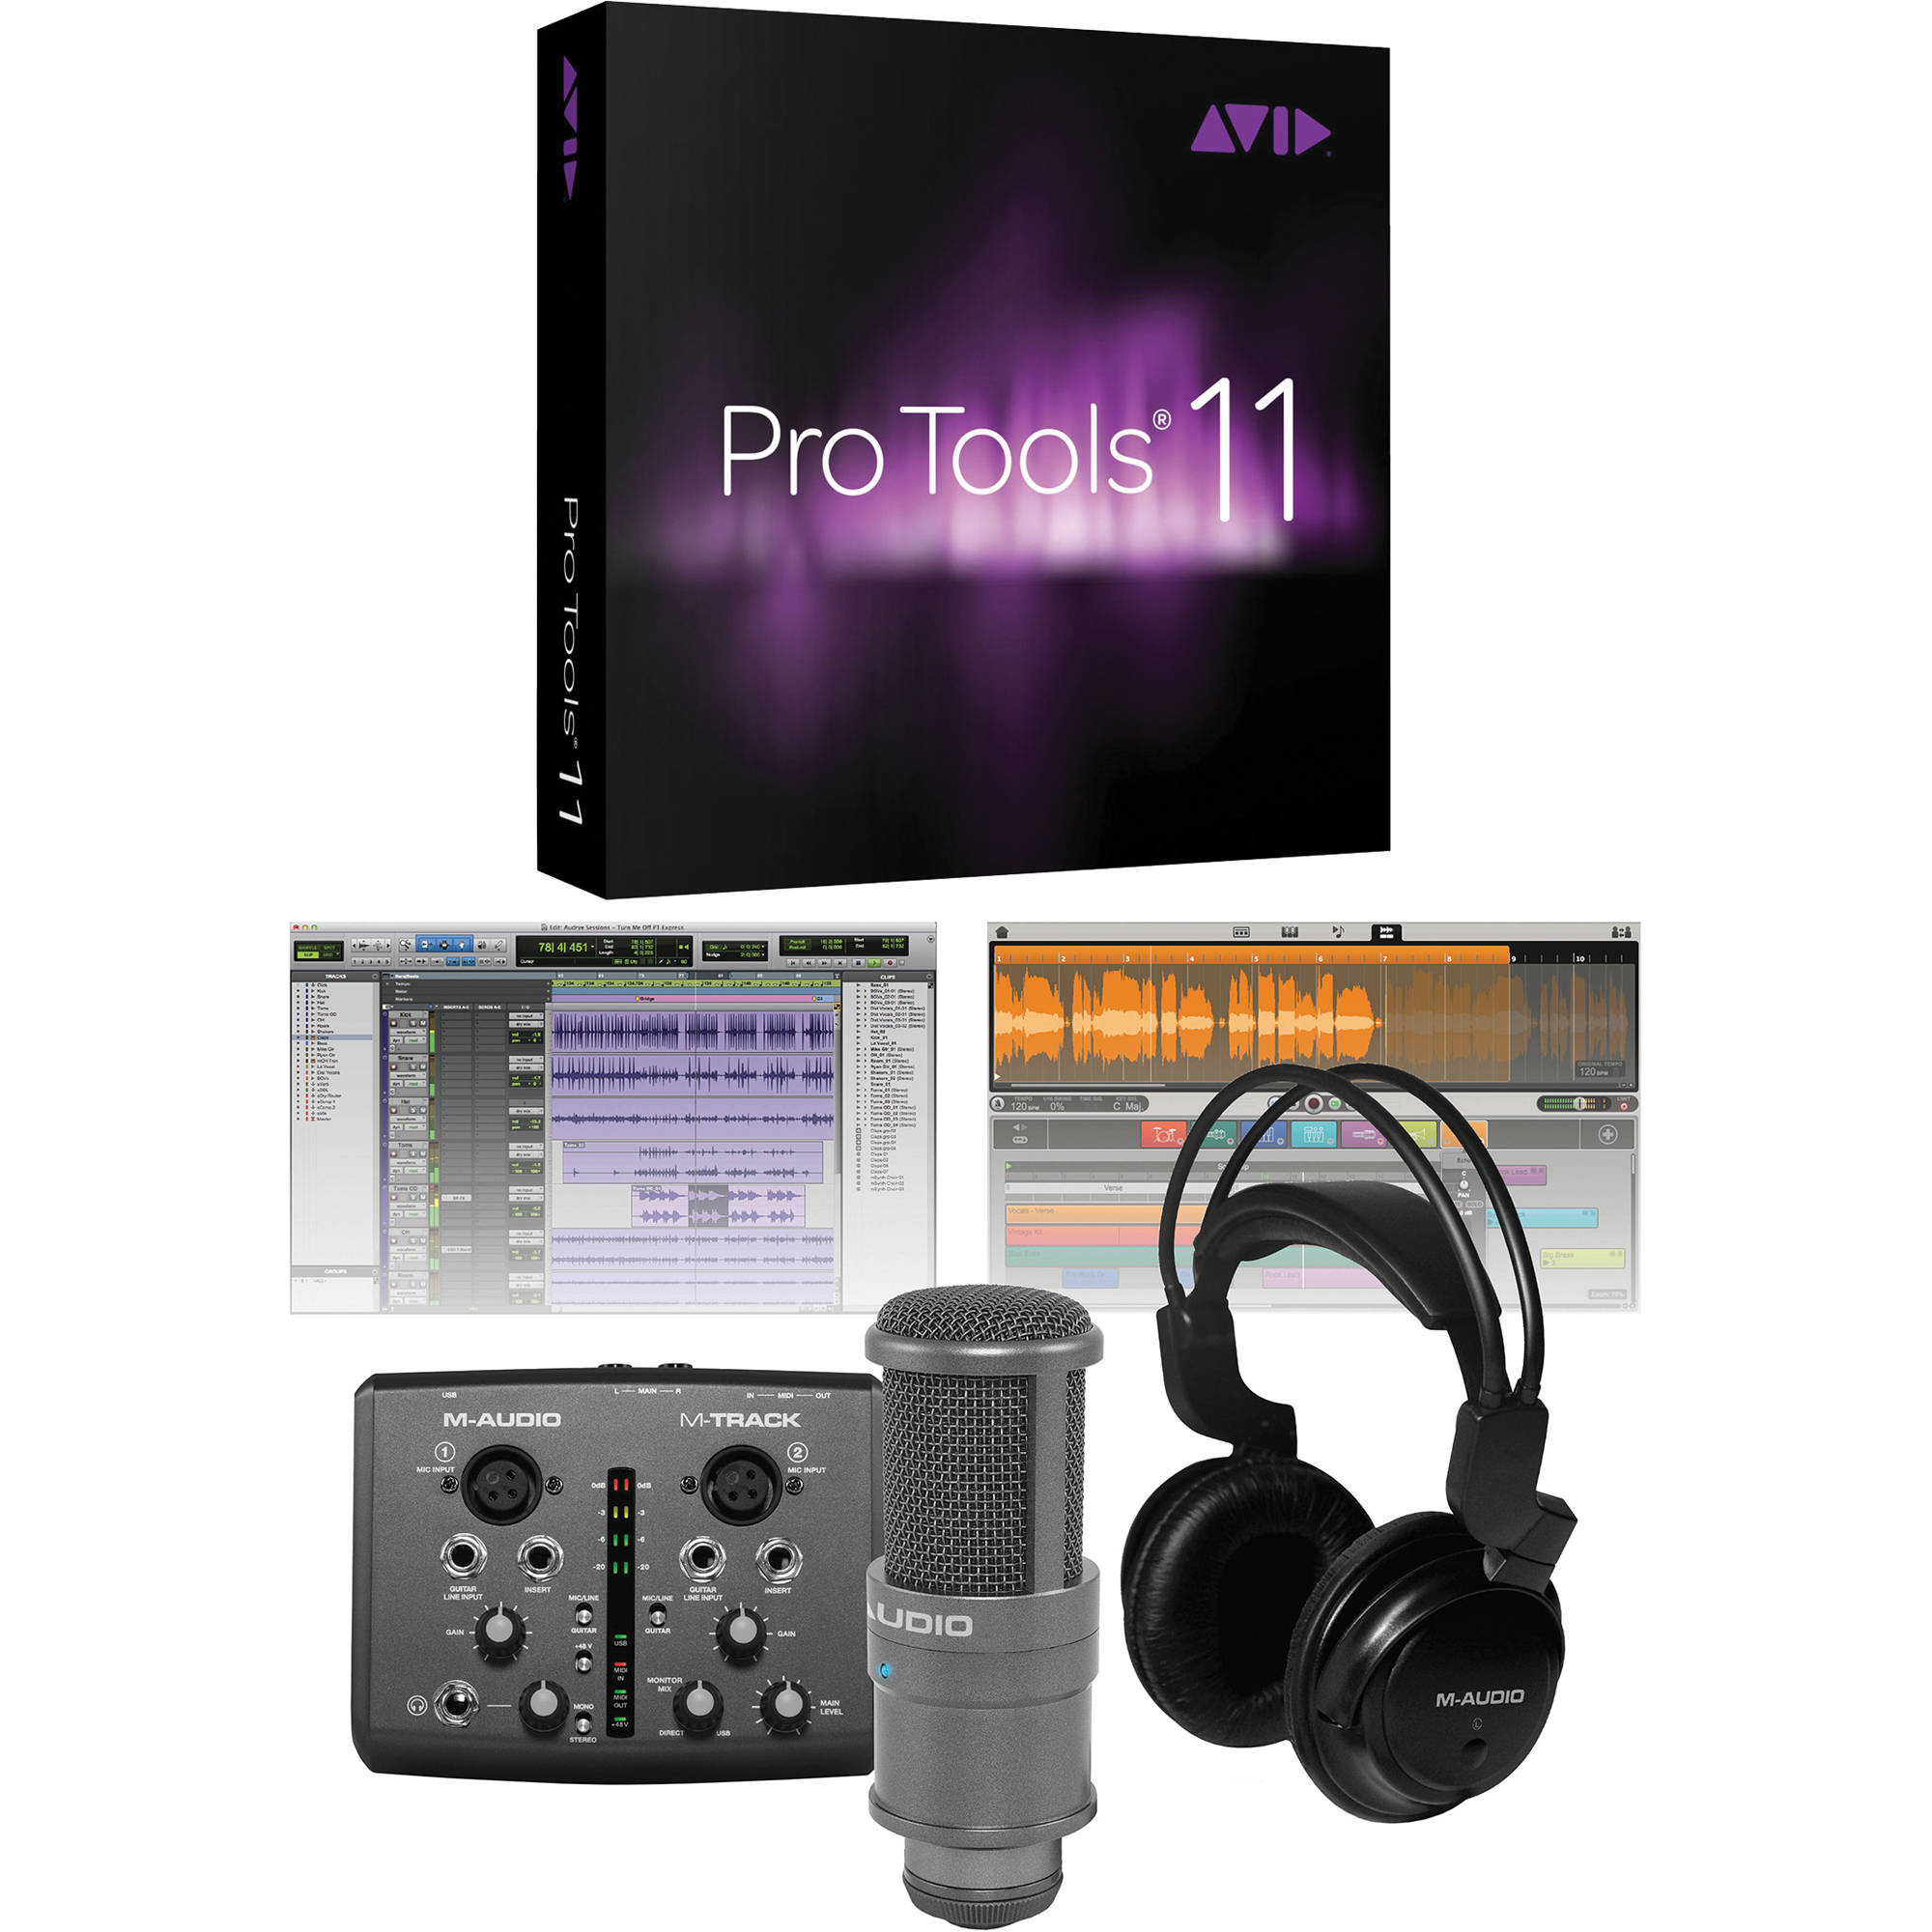 M-Audio Vocal Studio Pro with Pro Tools 11 Software Bundle